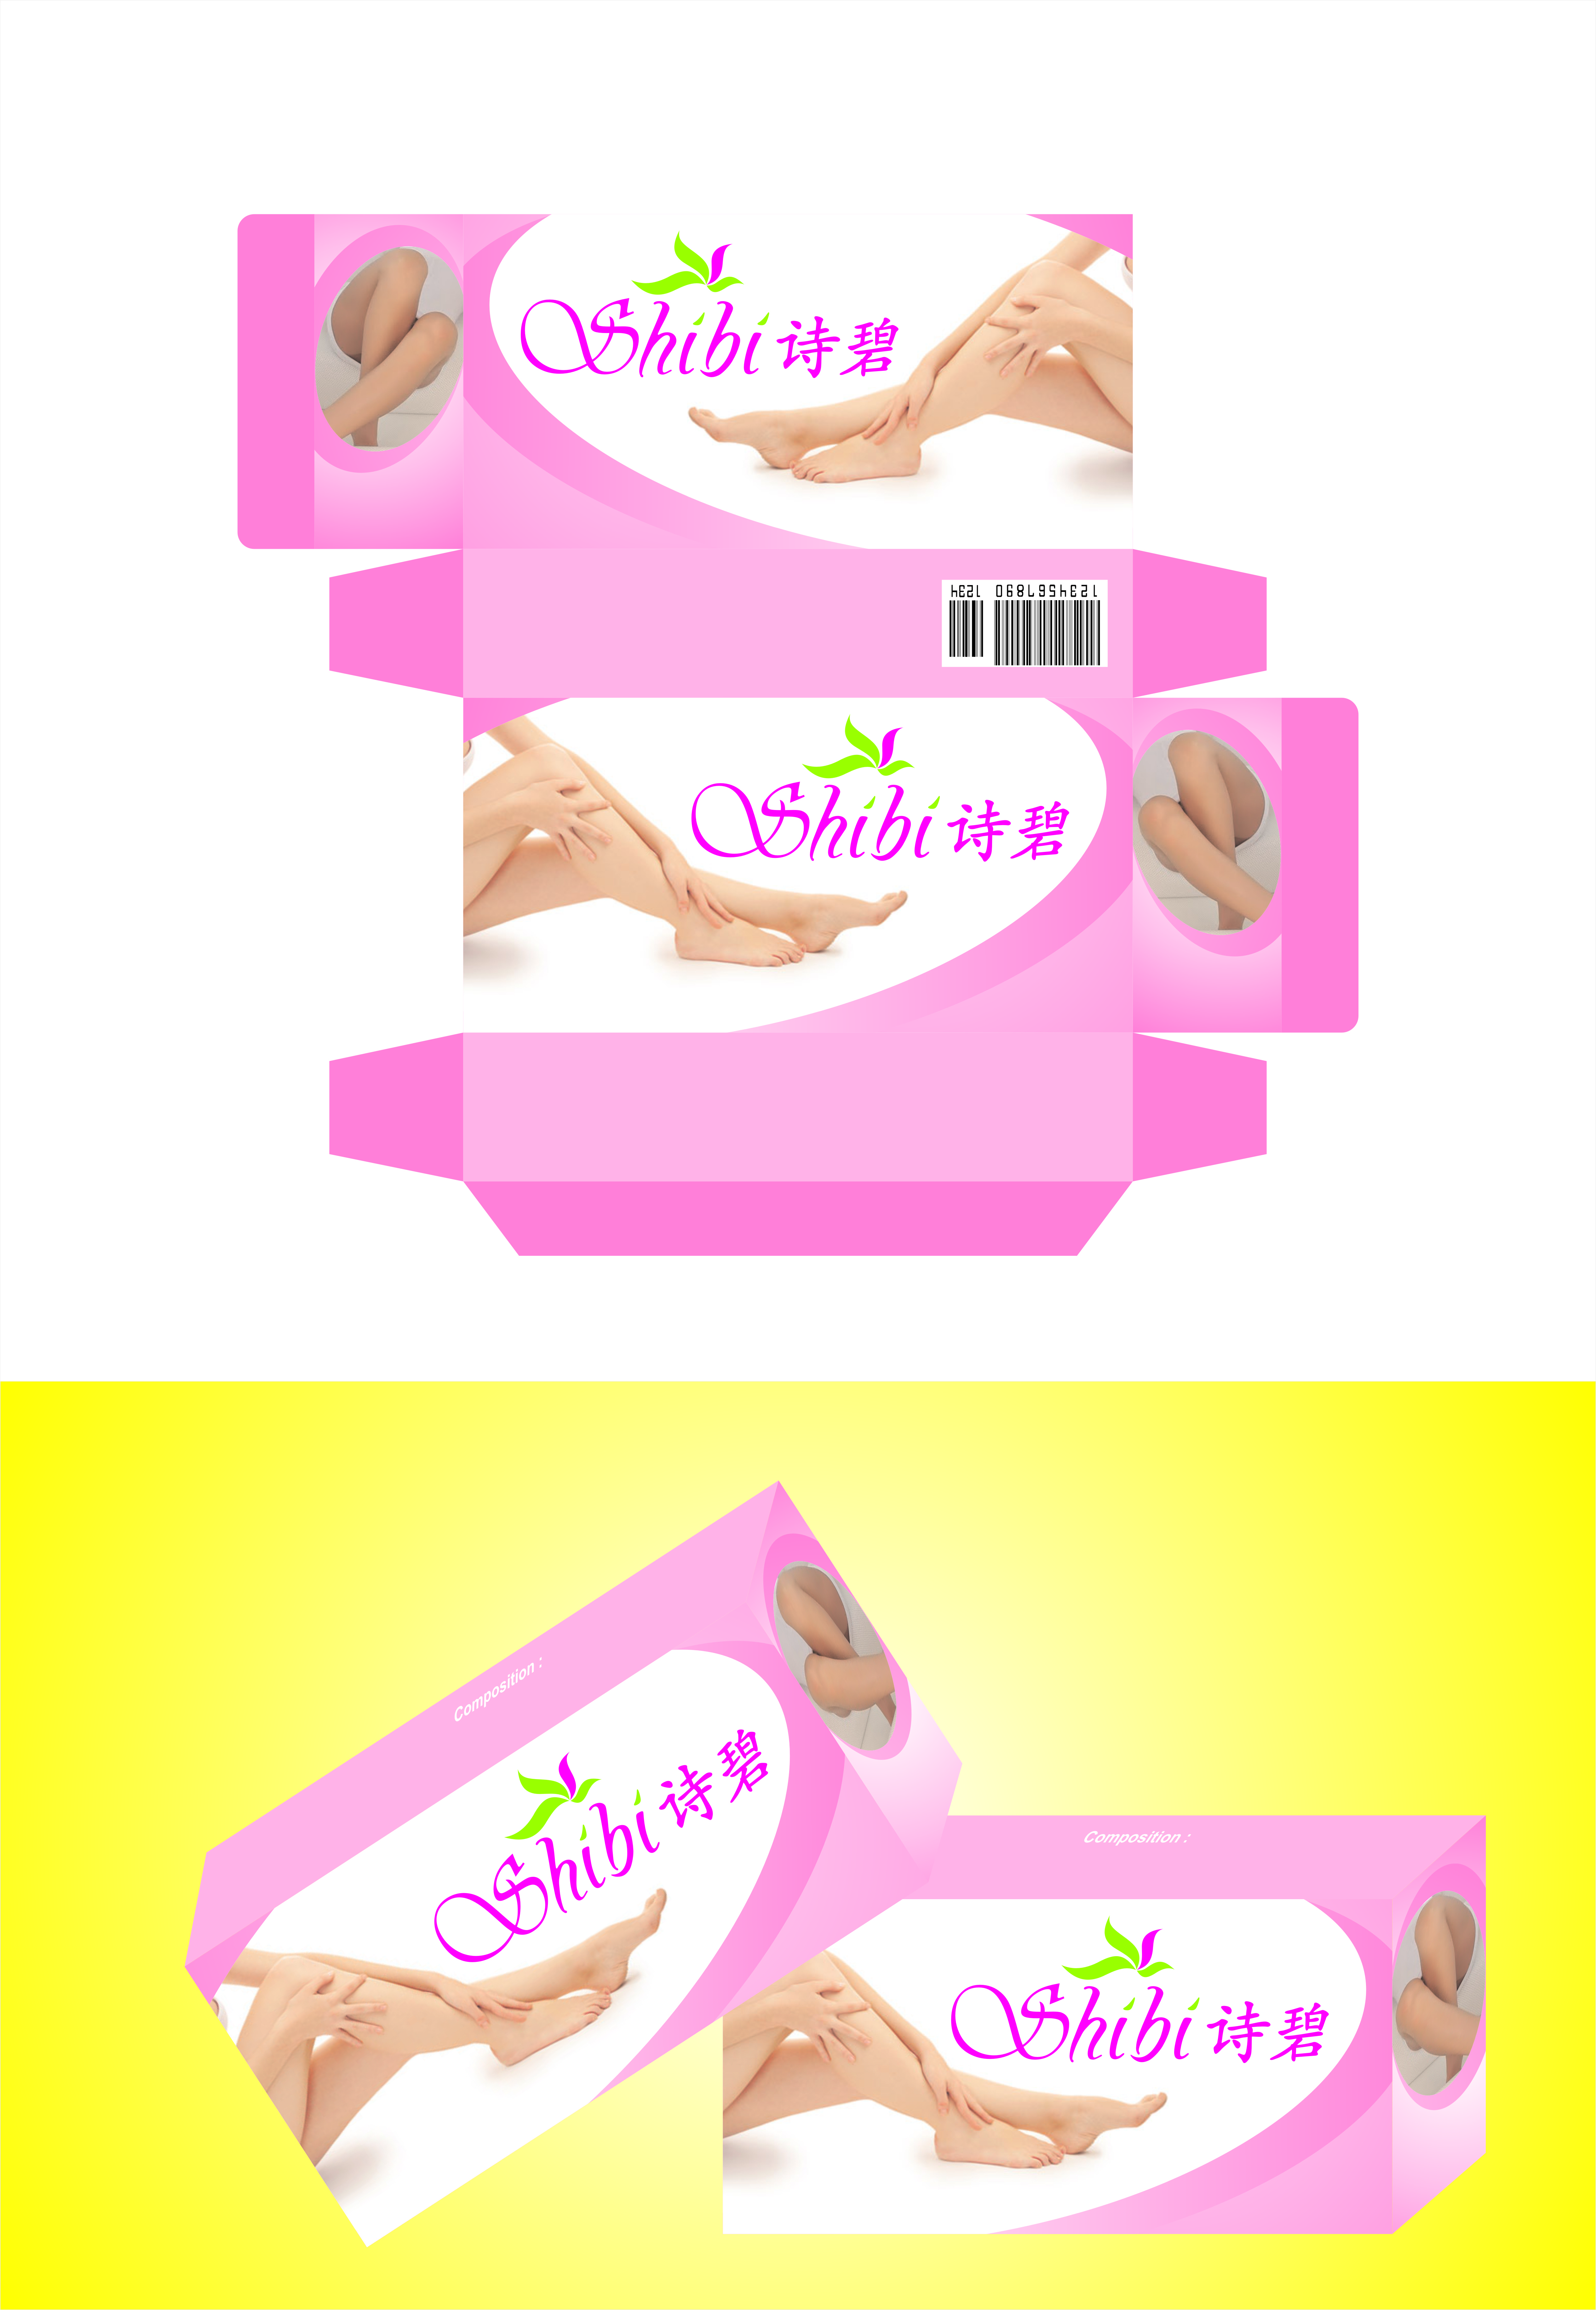 Packaging Design by RasYa Muhammad Athaya - Entry No. 8 in the Packaging Design Contest Packaging Design Needed for Exciting New Company qwd.